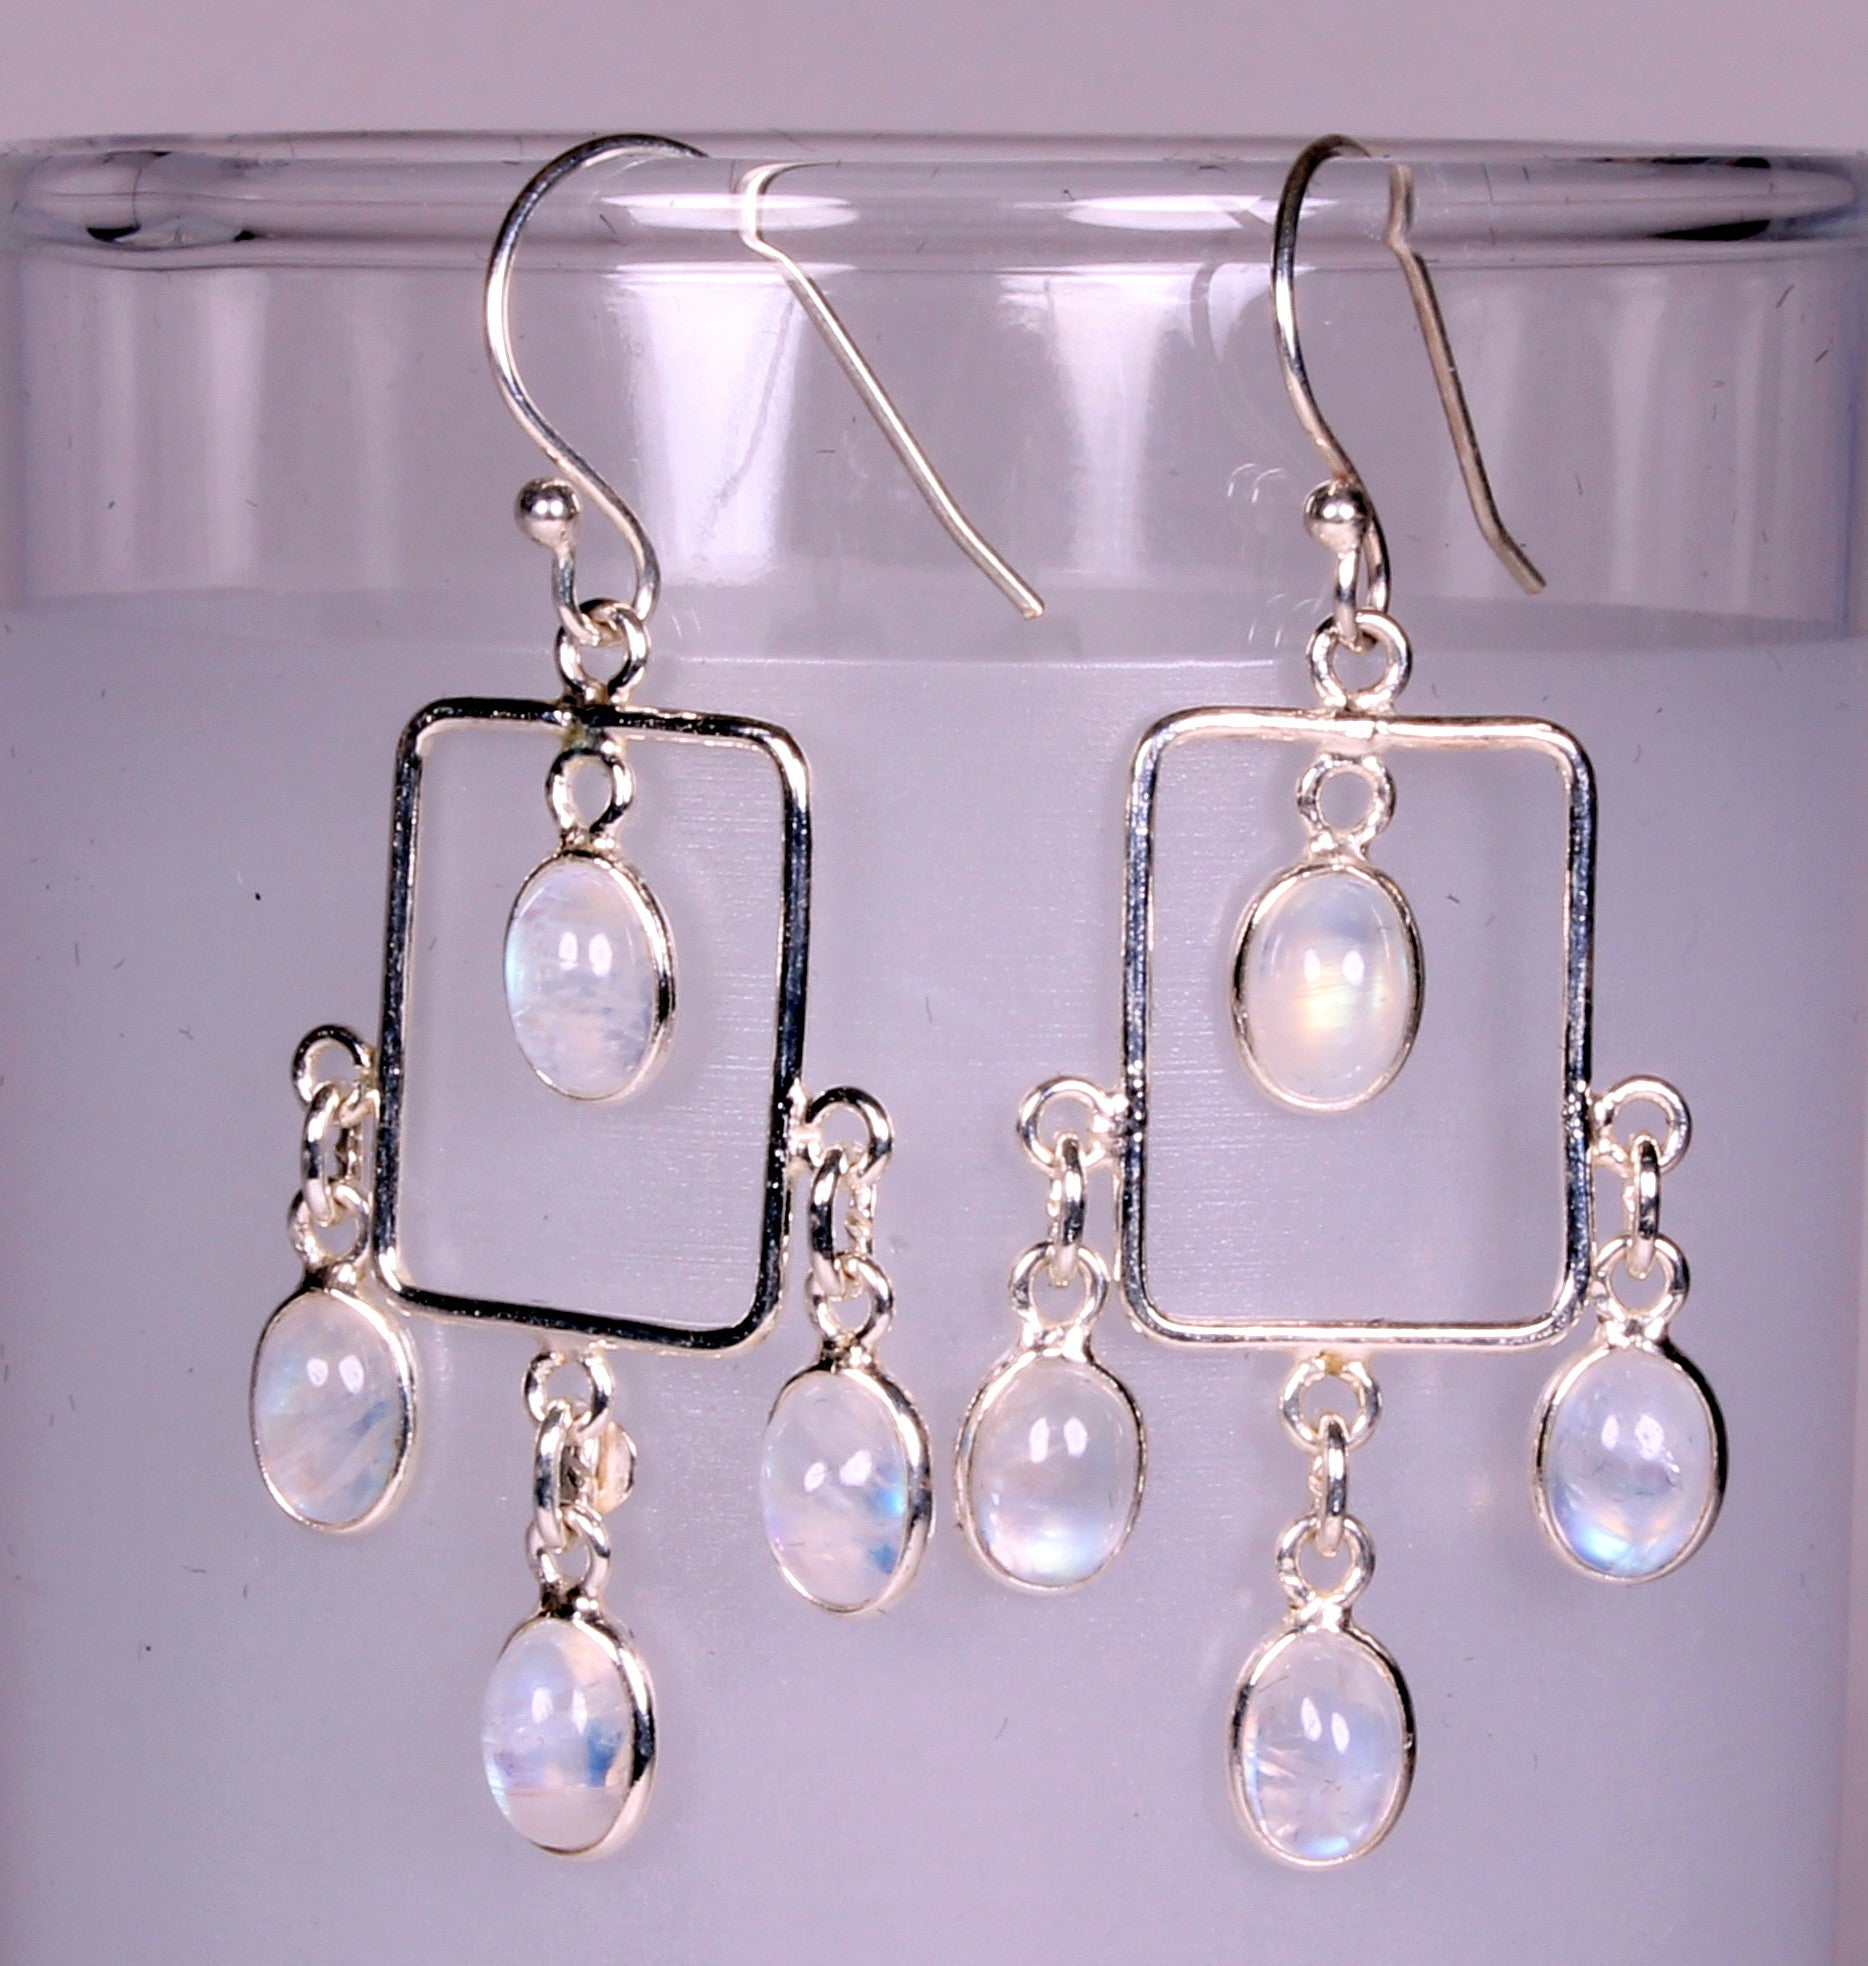 Rainbow Moonstone Chandelier Sterling Silver Earrings